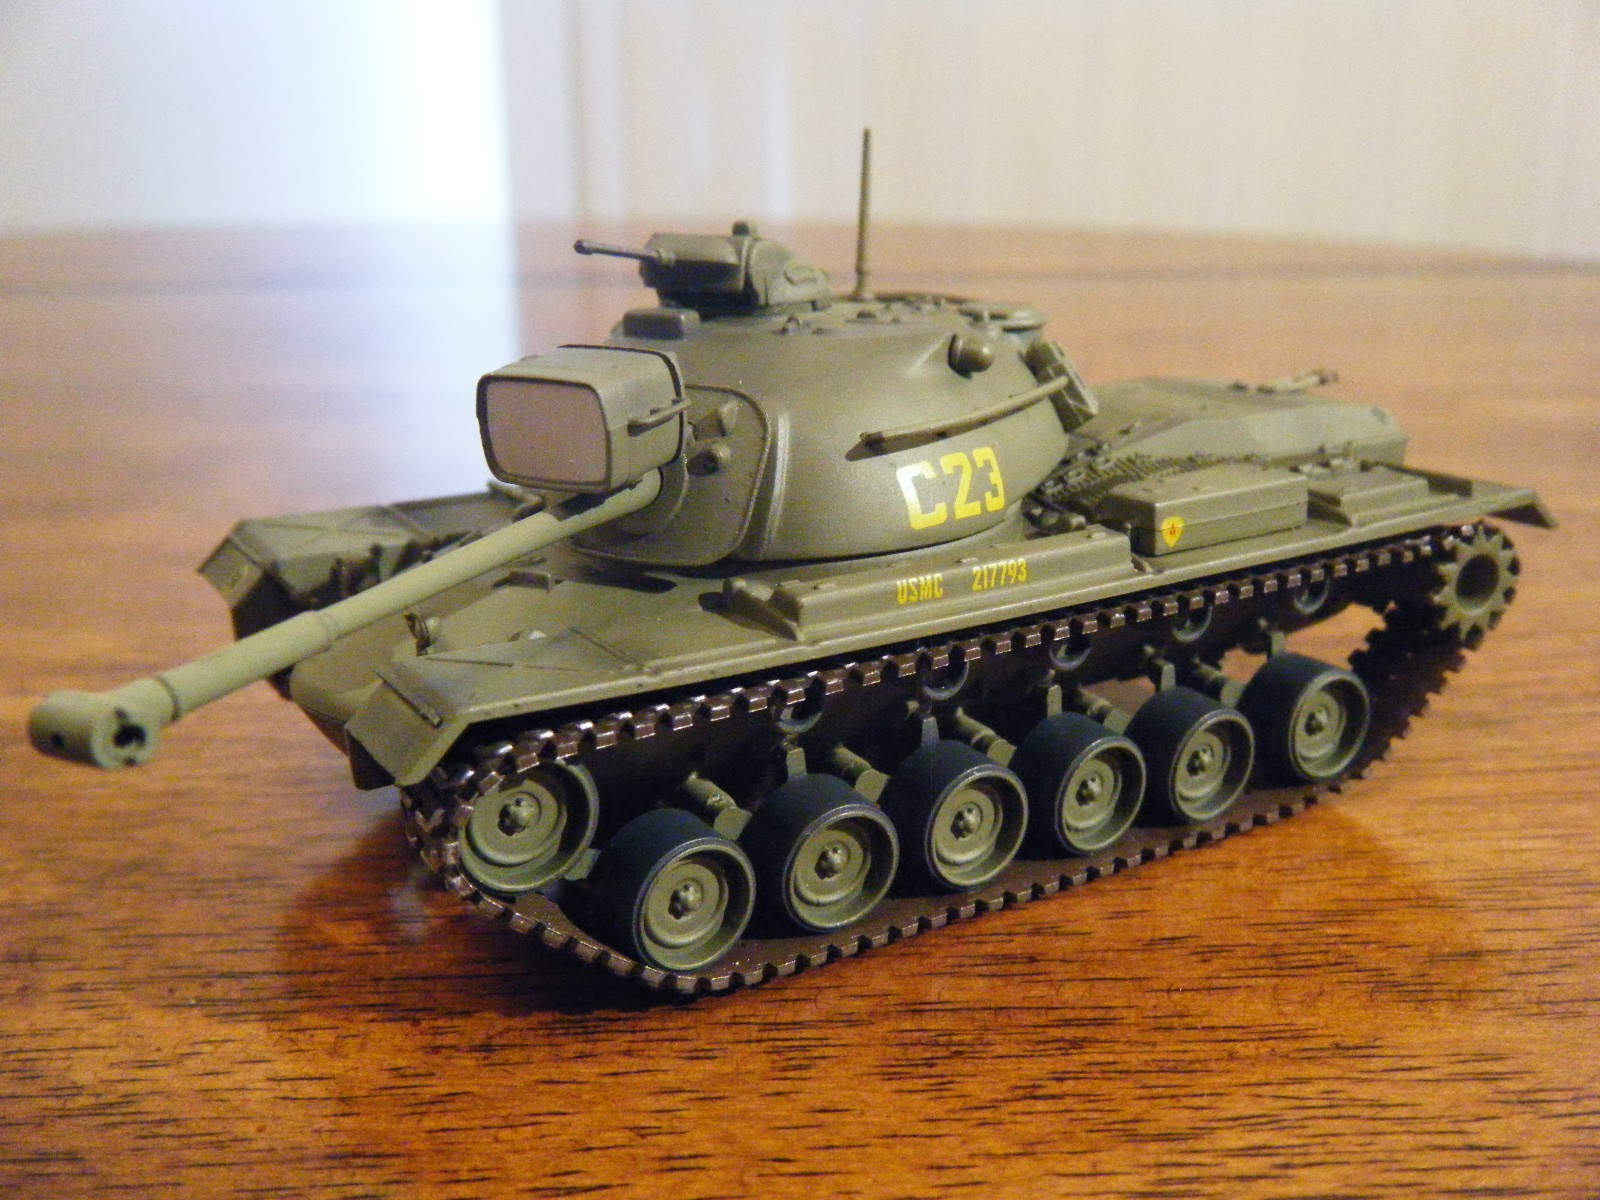 1/72 Scale Tanks